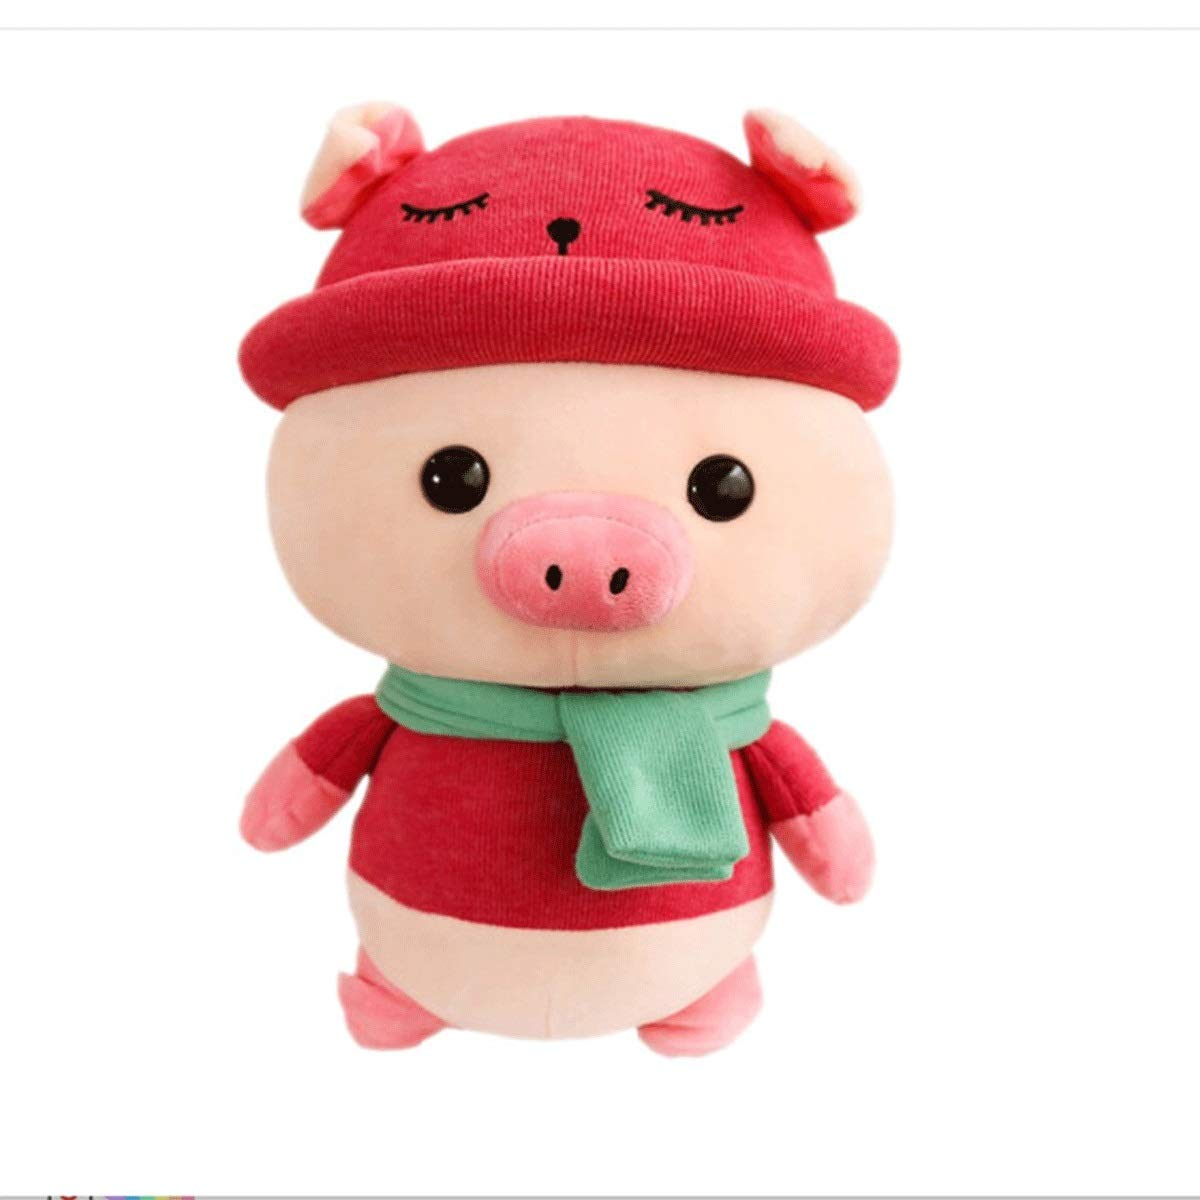 Red 35cm Red 35cm Plush Toys, Cute Plush Toy Pigs, Doll Sleeping Pillows, Birthday Gifts Festival Gifts, Pig Year Mascots, Annual Gifts, Multiple colors and Sizes, Best Gifts (color   Red, Size   35cm)